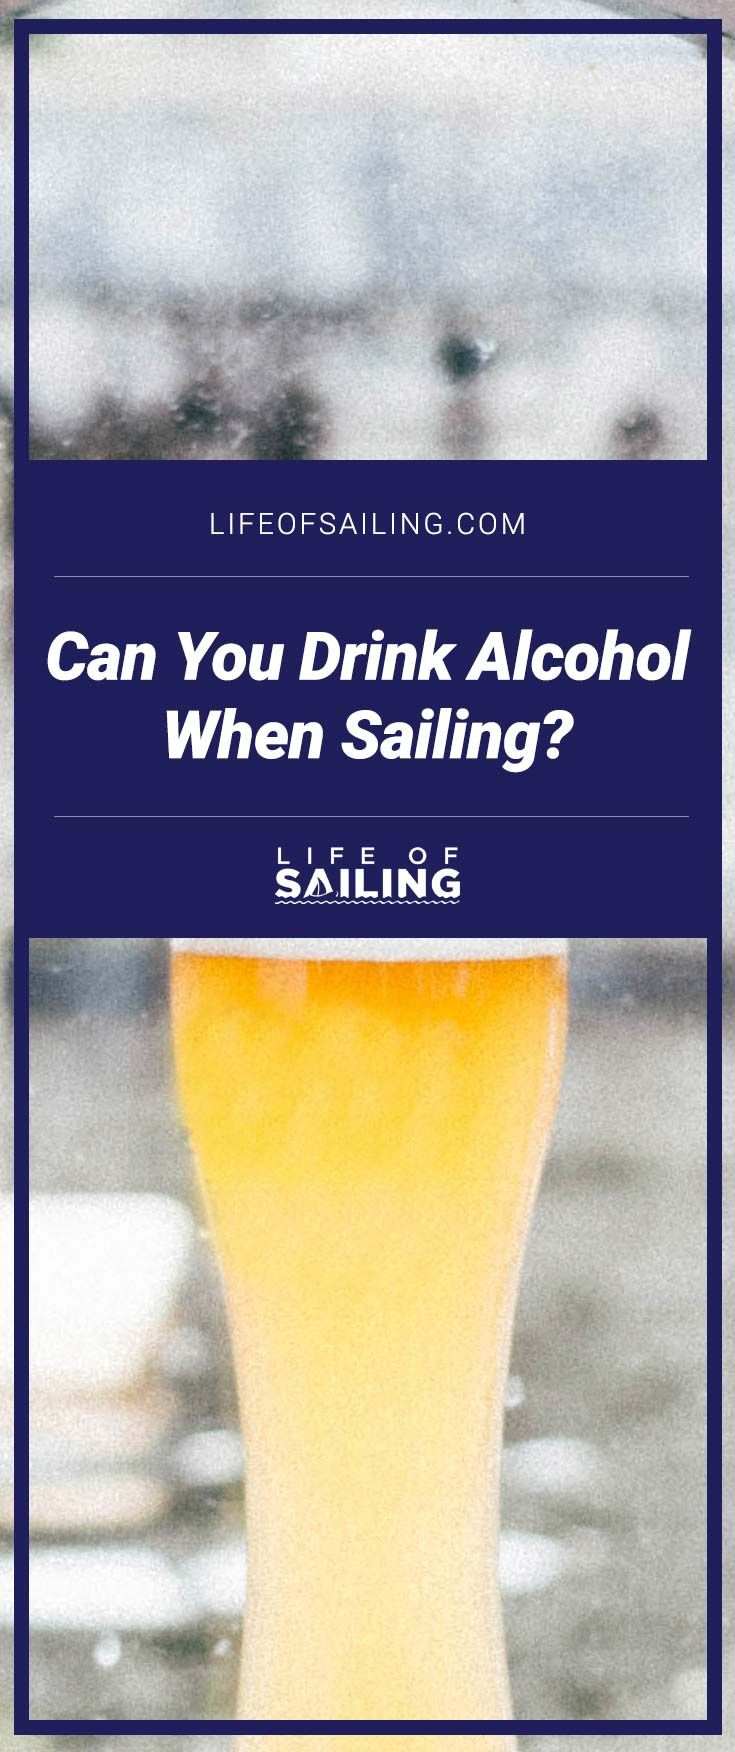 Almost 16 Of Boating Accidents And Fatalities Involve Alcohol This Should Be A Reason Enough Not To Consume Alcoh In 2020 Sailing Legal Drinking Age Alcoholic Drinks